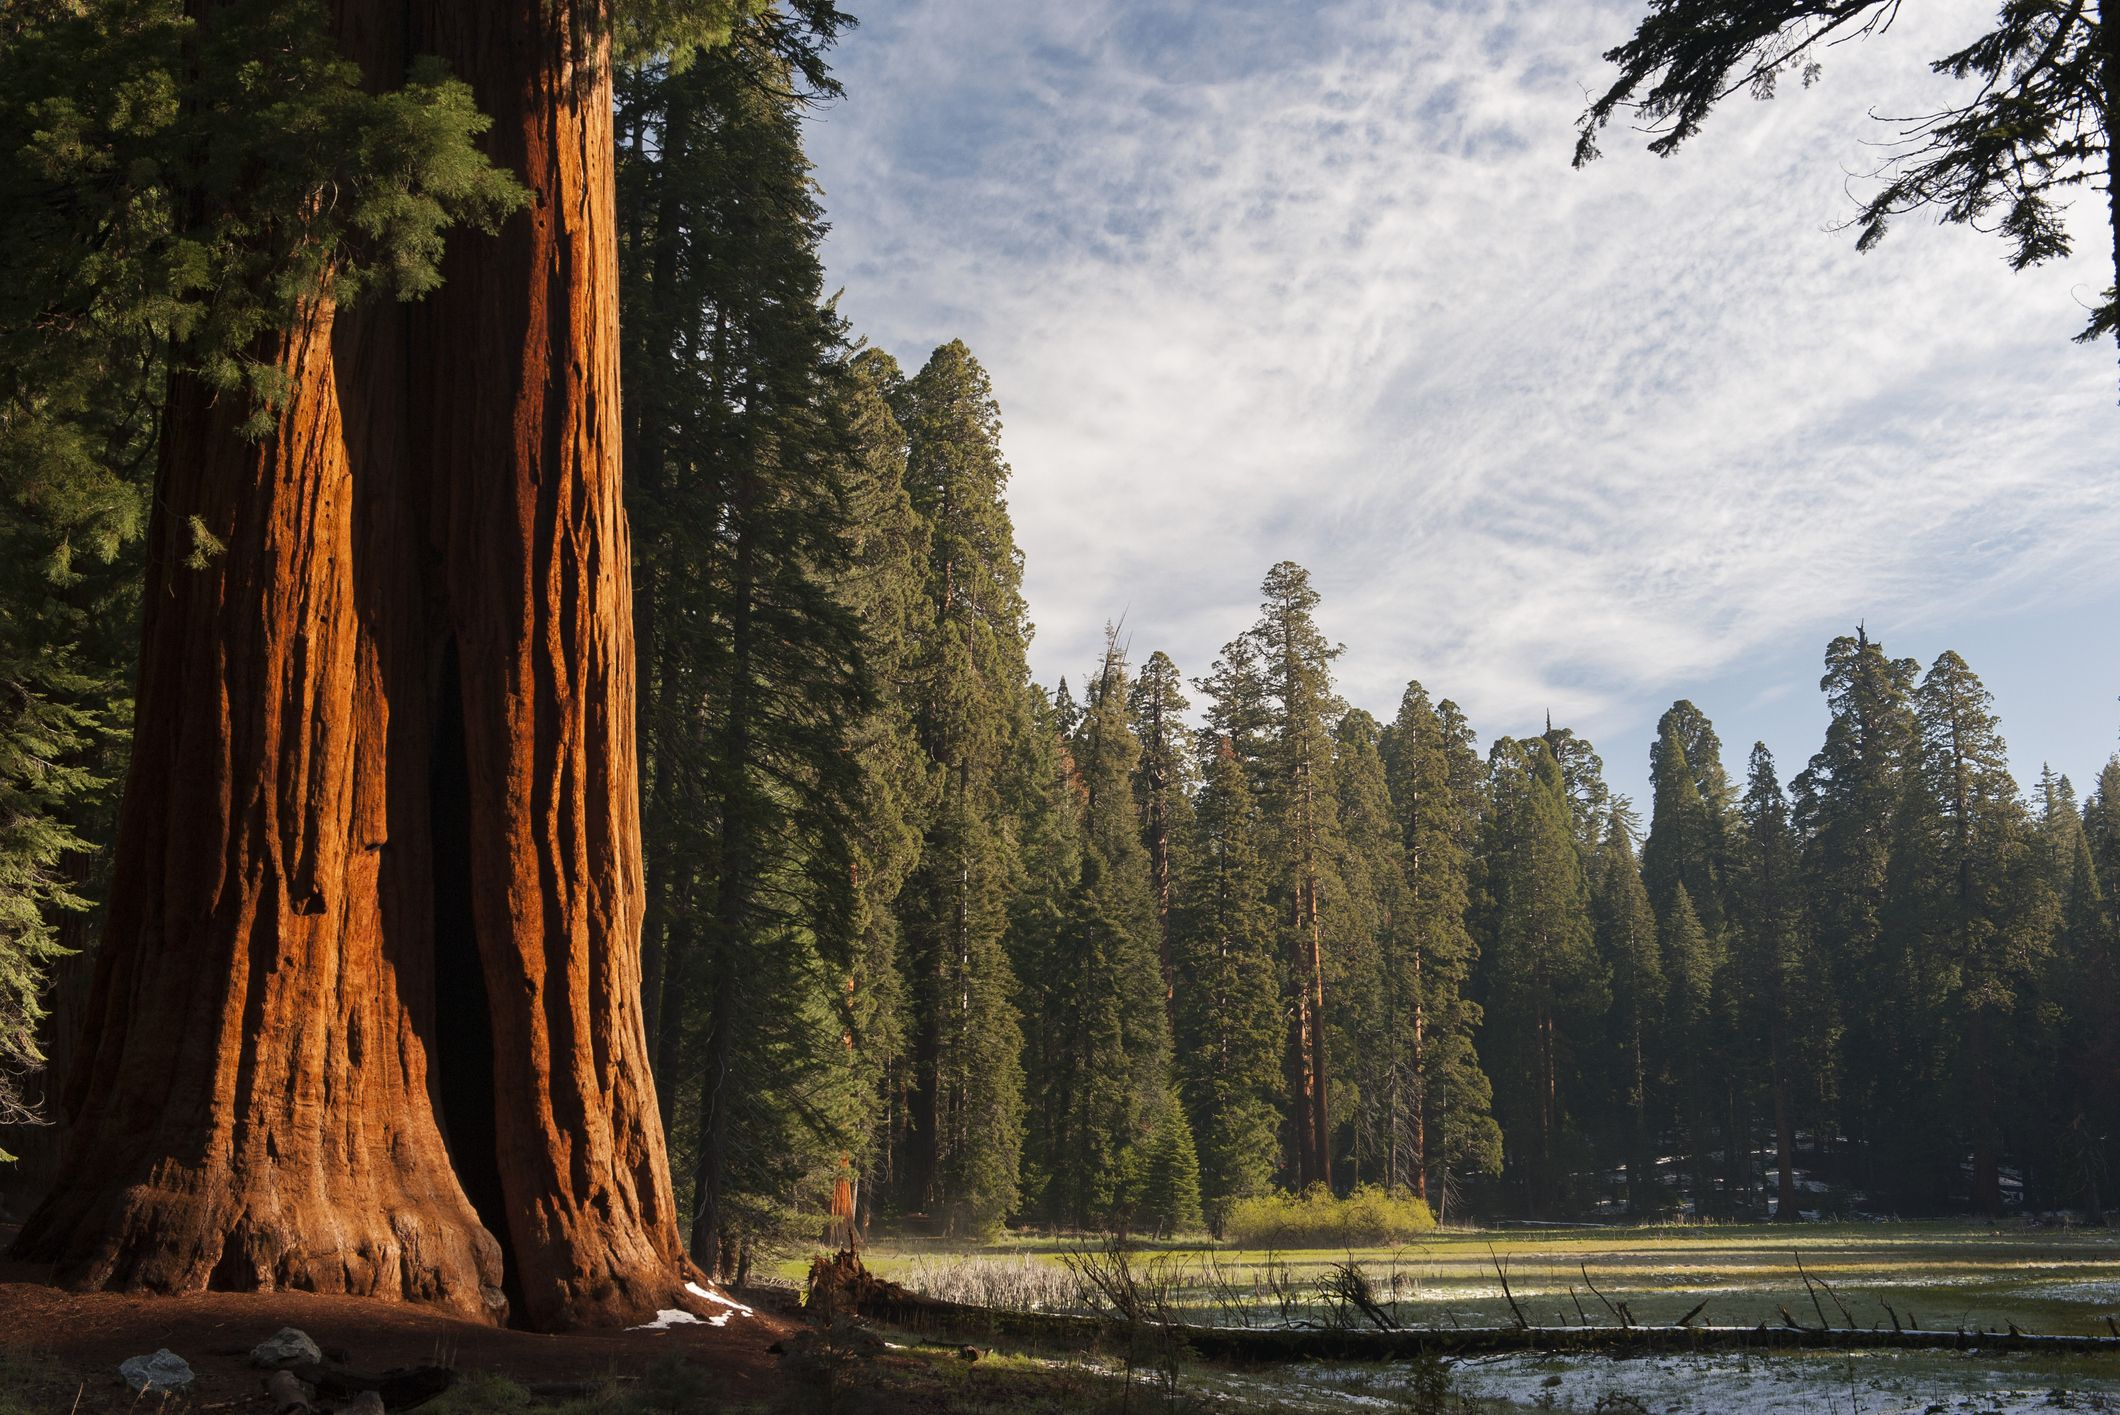 Giant sequoia trees, Sequoia and Kings Canyon National Parks, California, USA